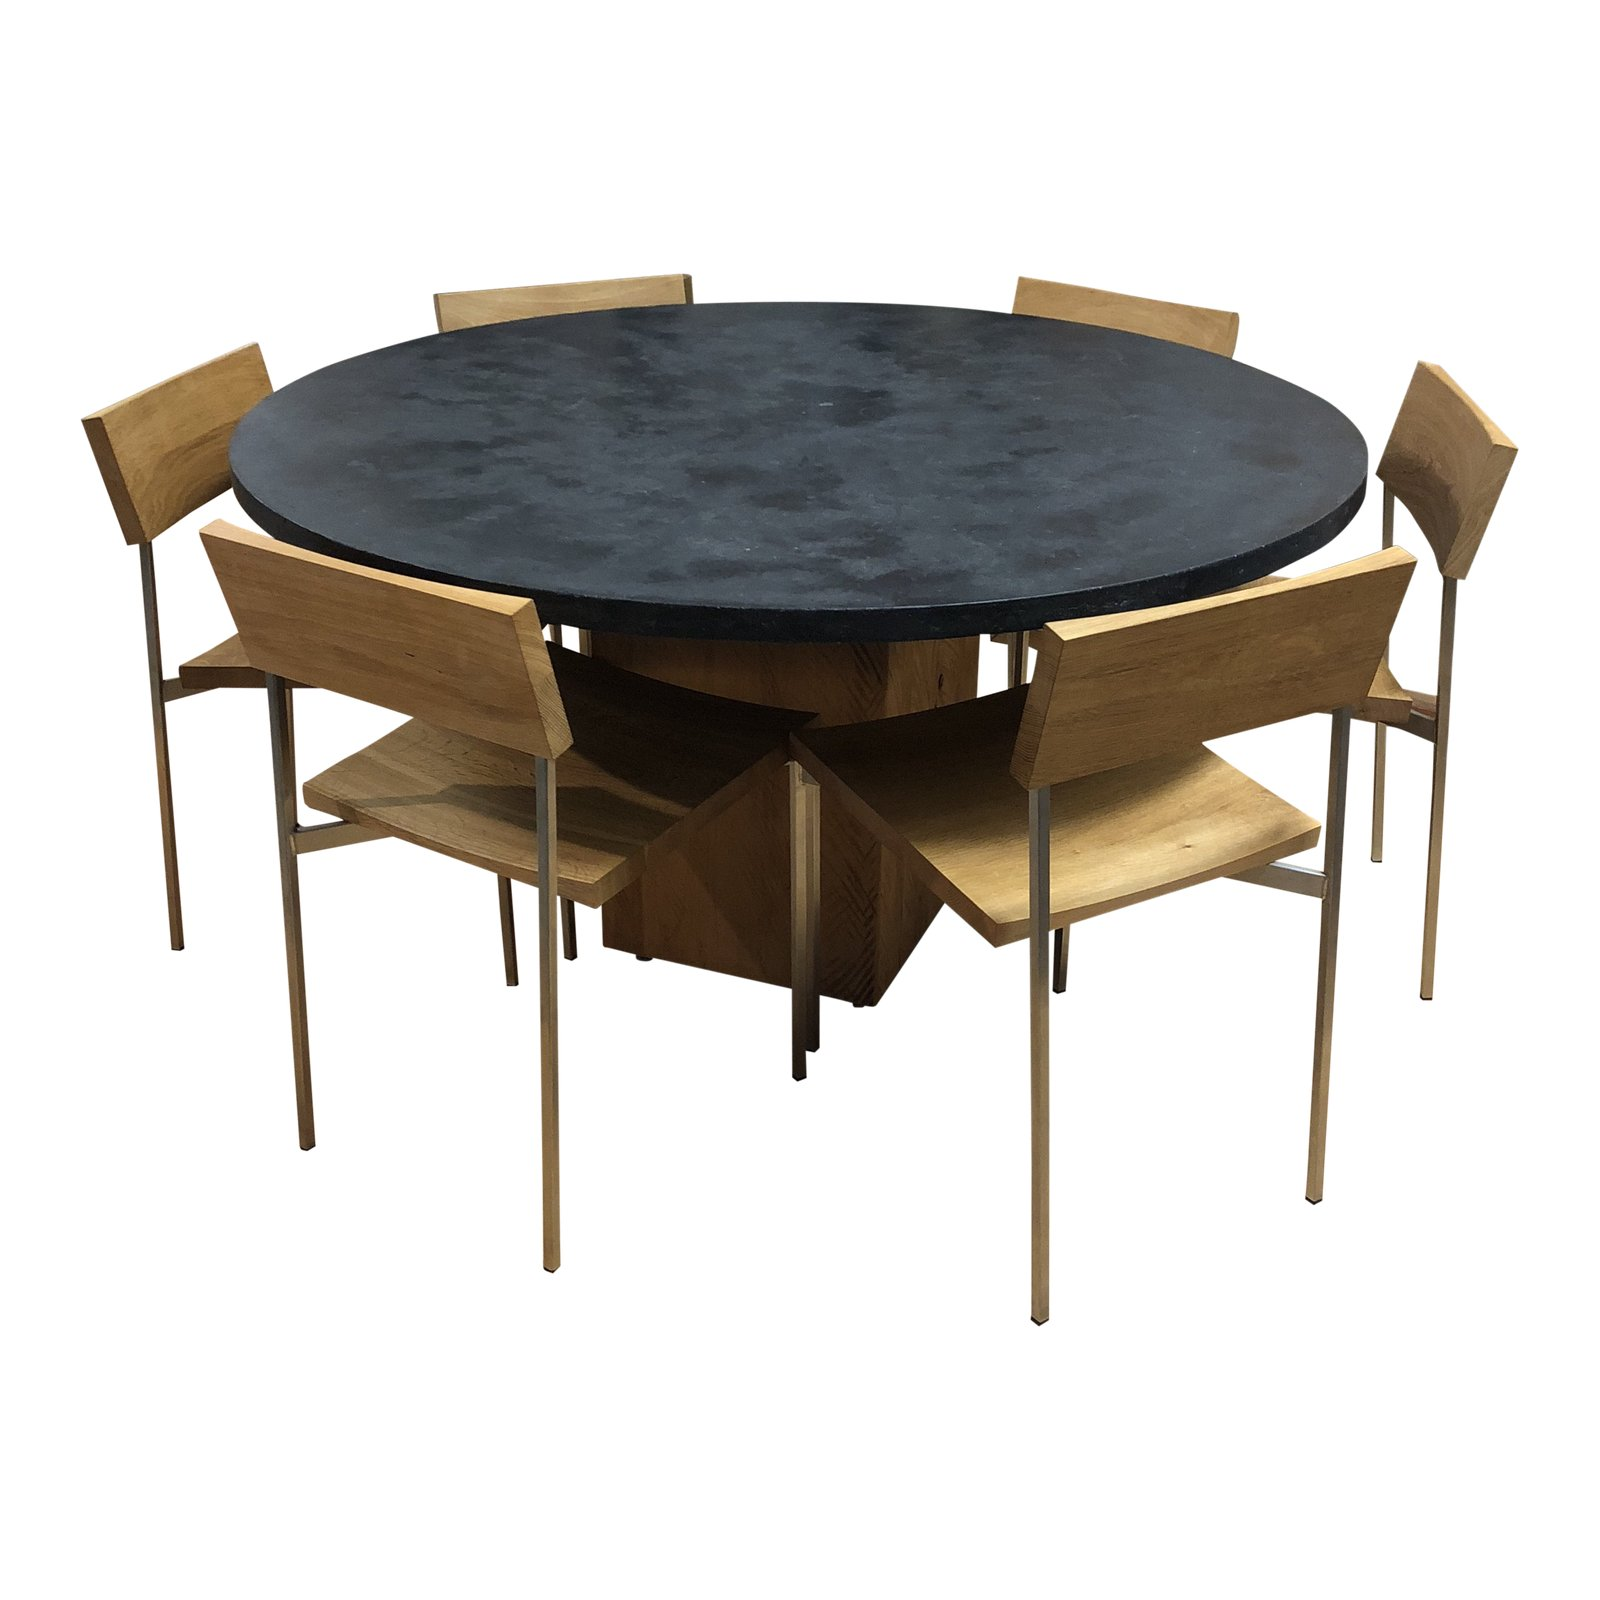 Stainless Steel Dining Set Original Price 12 000 00 12149631 Master Sold